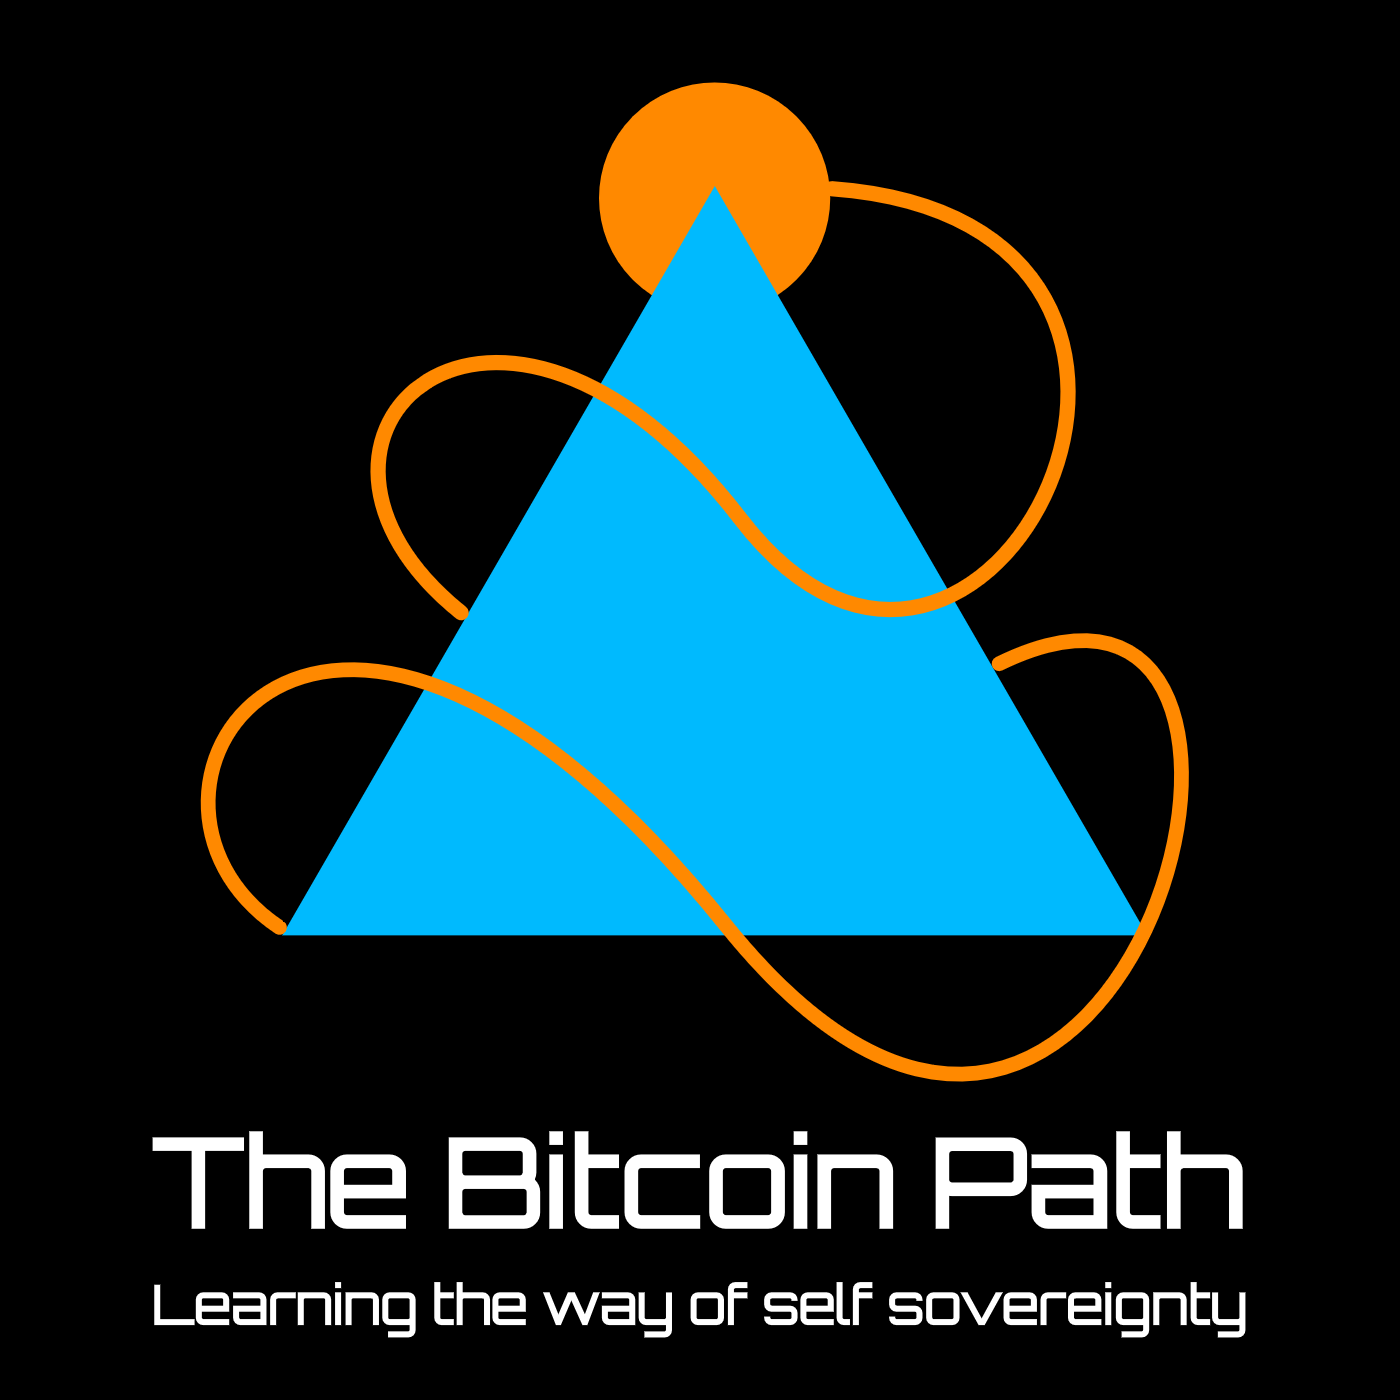 The Bitcoin Path